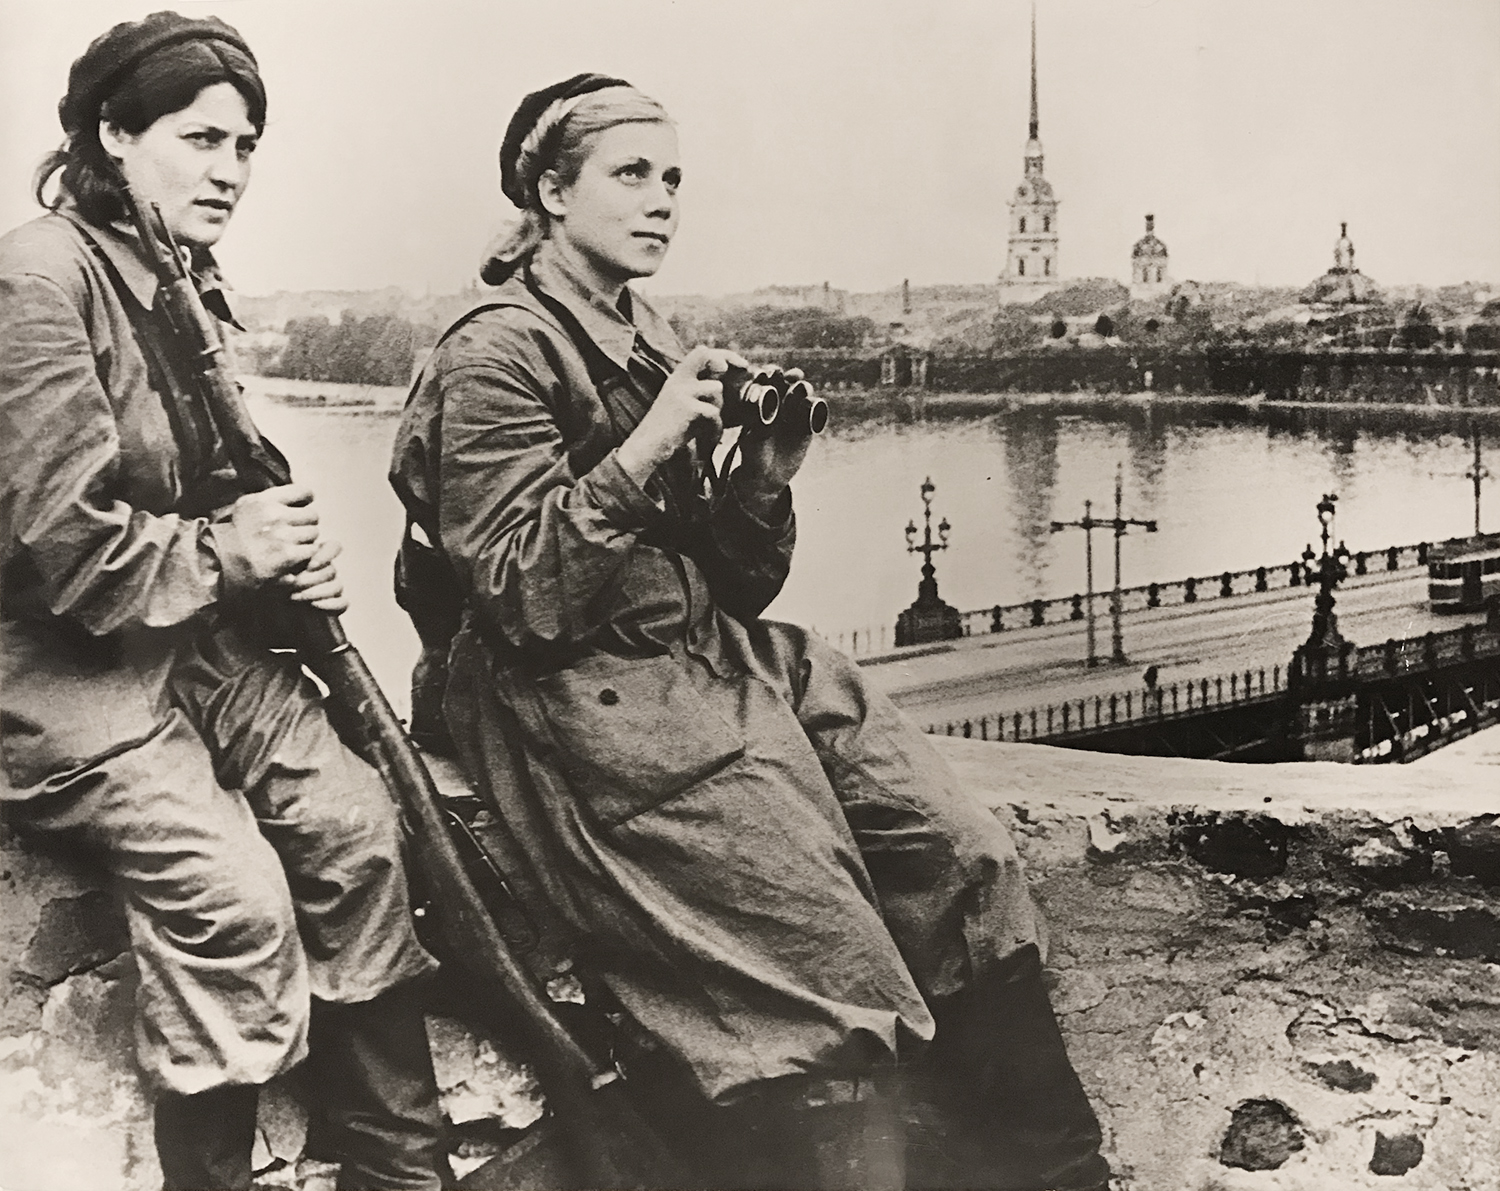 Boris Kudoyarov's photograph taken during the Siege of Leningrad during WWII. ca. 1941-1944